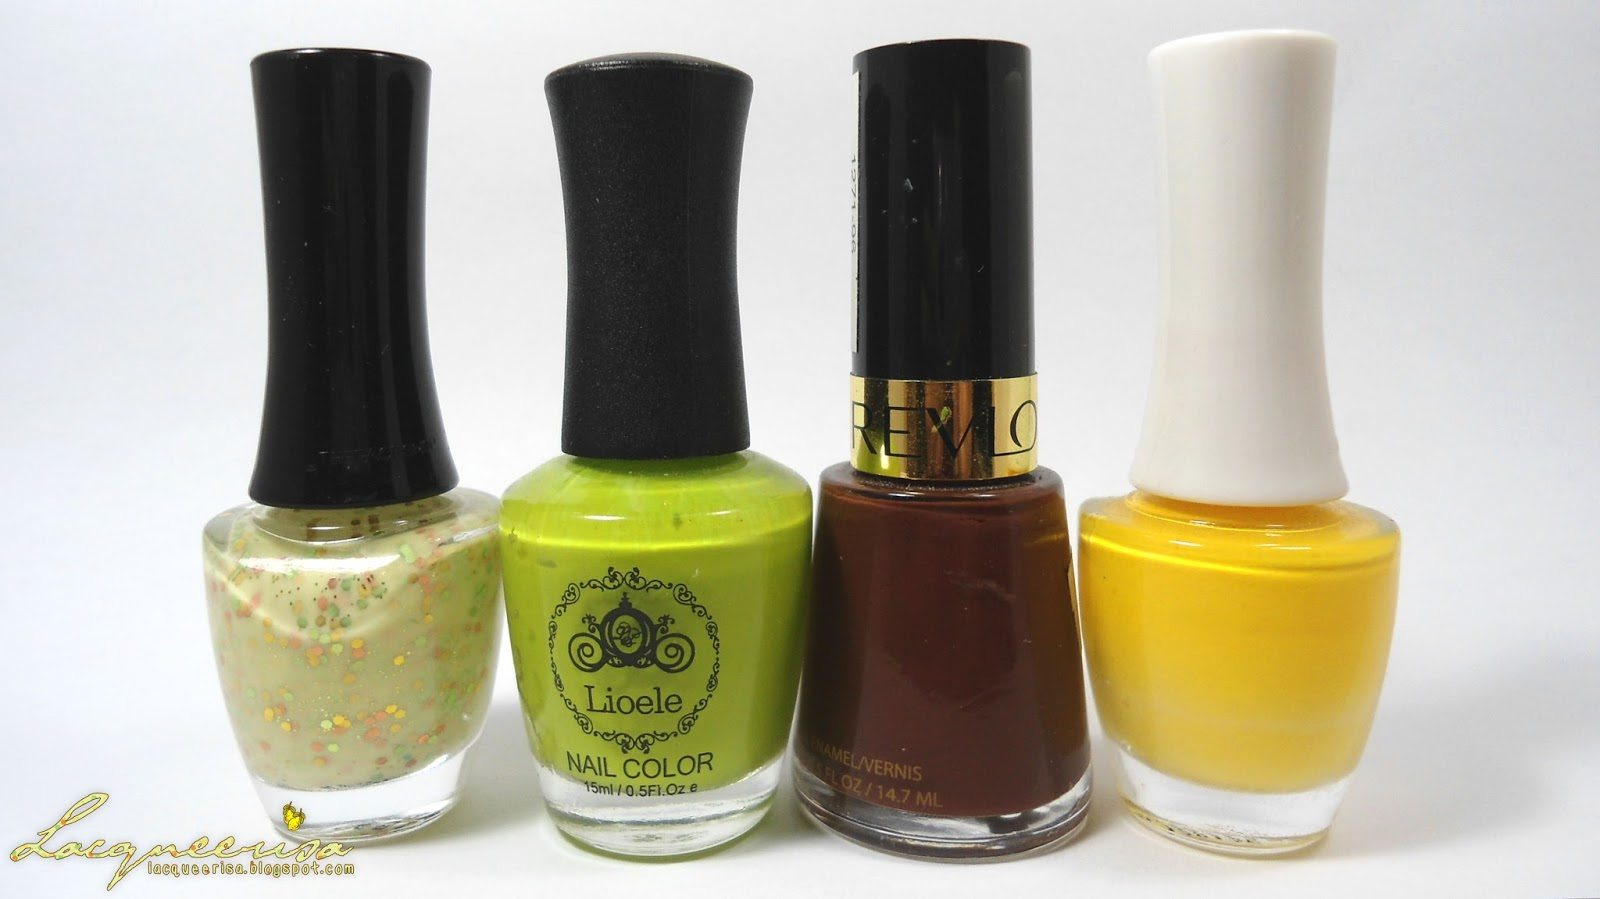 Nail polishes used